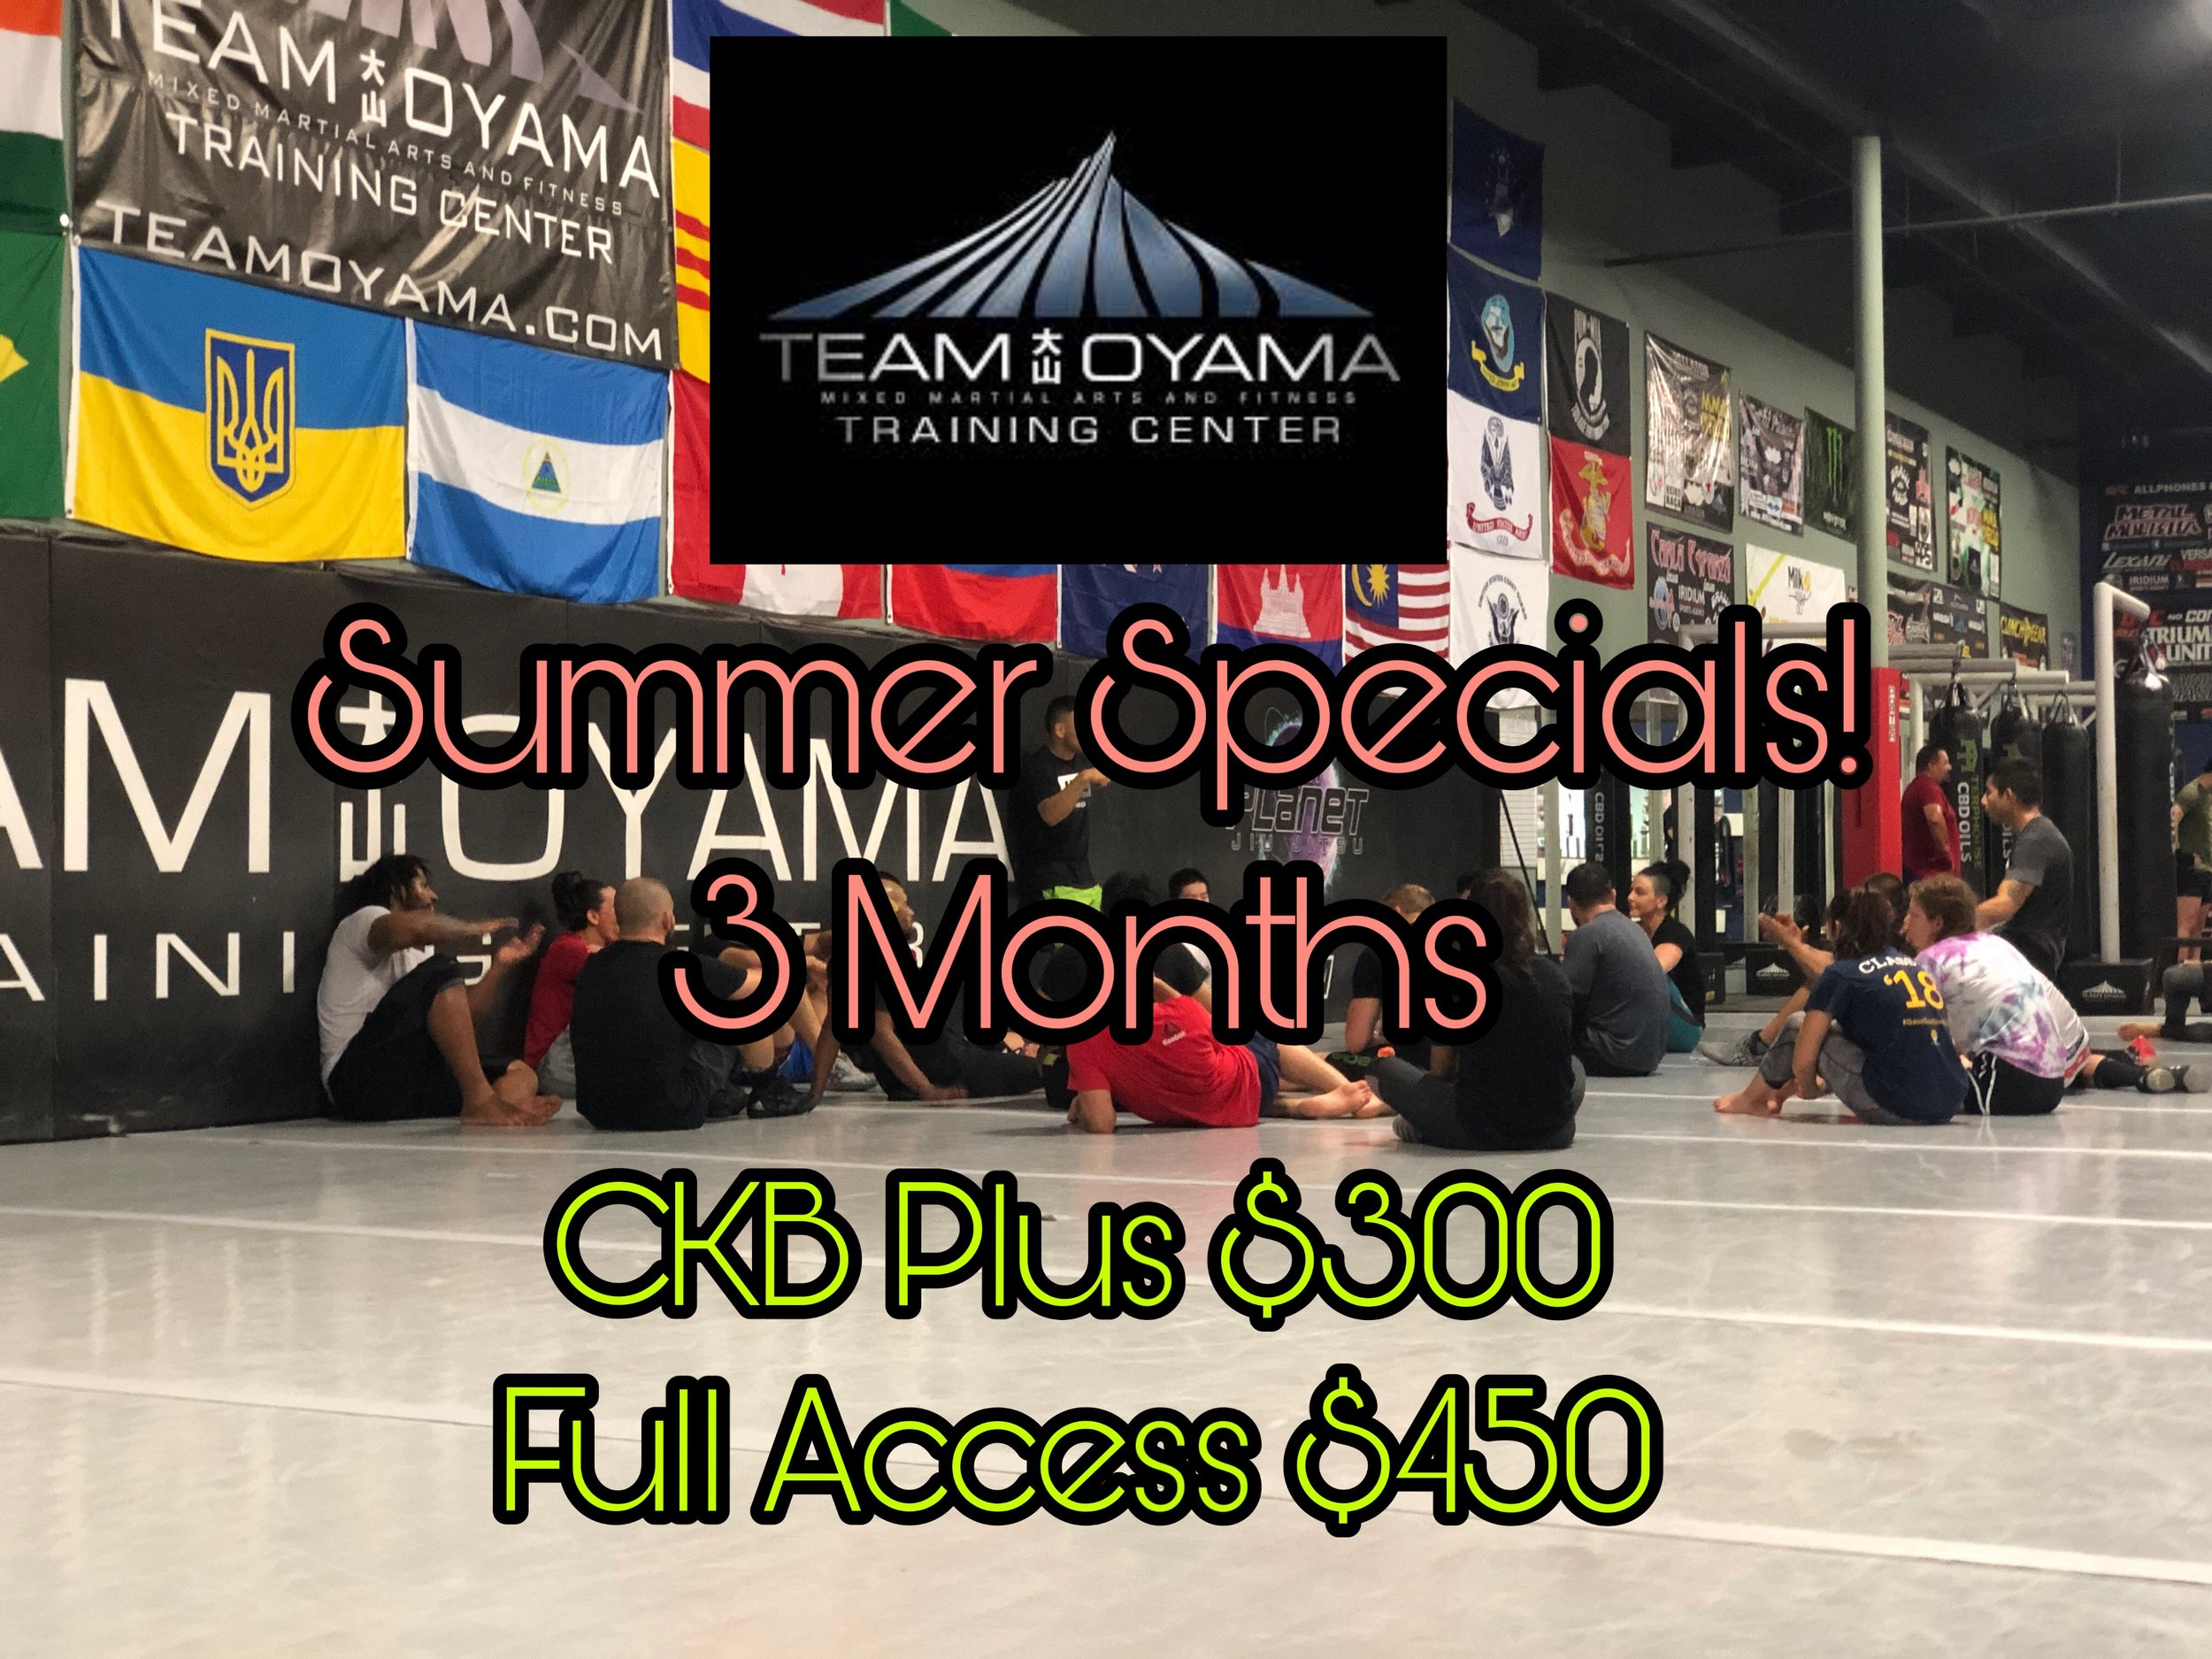 These memberships are pre paid for 3 months in advance and are a great way to spend your summer or try out the gym before committing to a 12-month!  CKB Plus includes CKB and Fight Fit. Full Access includes CKB, Fight Fit, Nogi, Wrestling, MMA, and access to the Functional Fit Room.